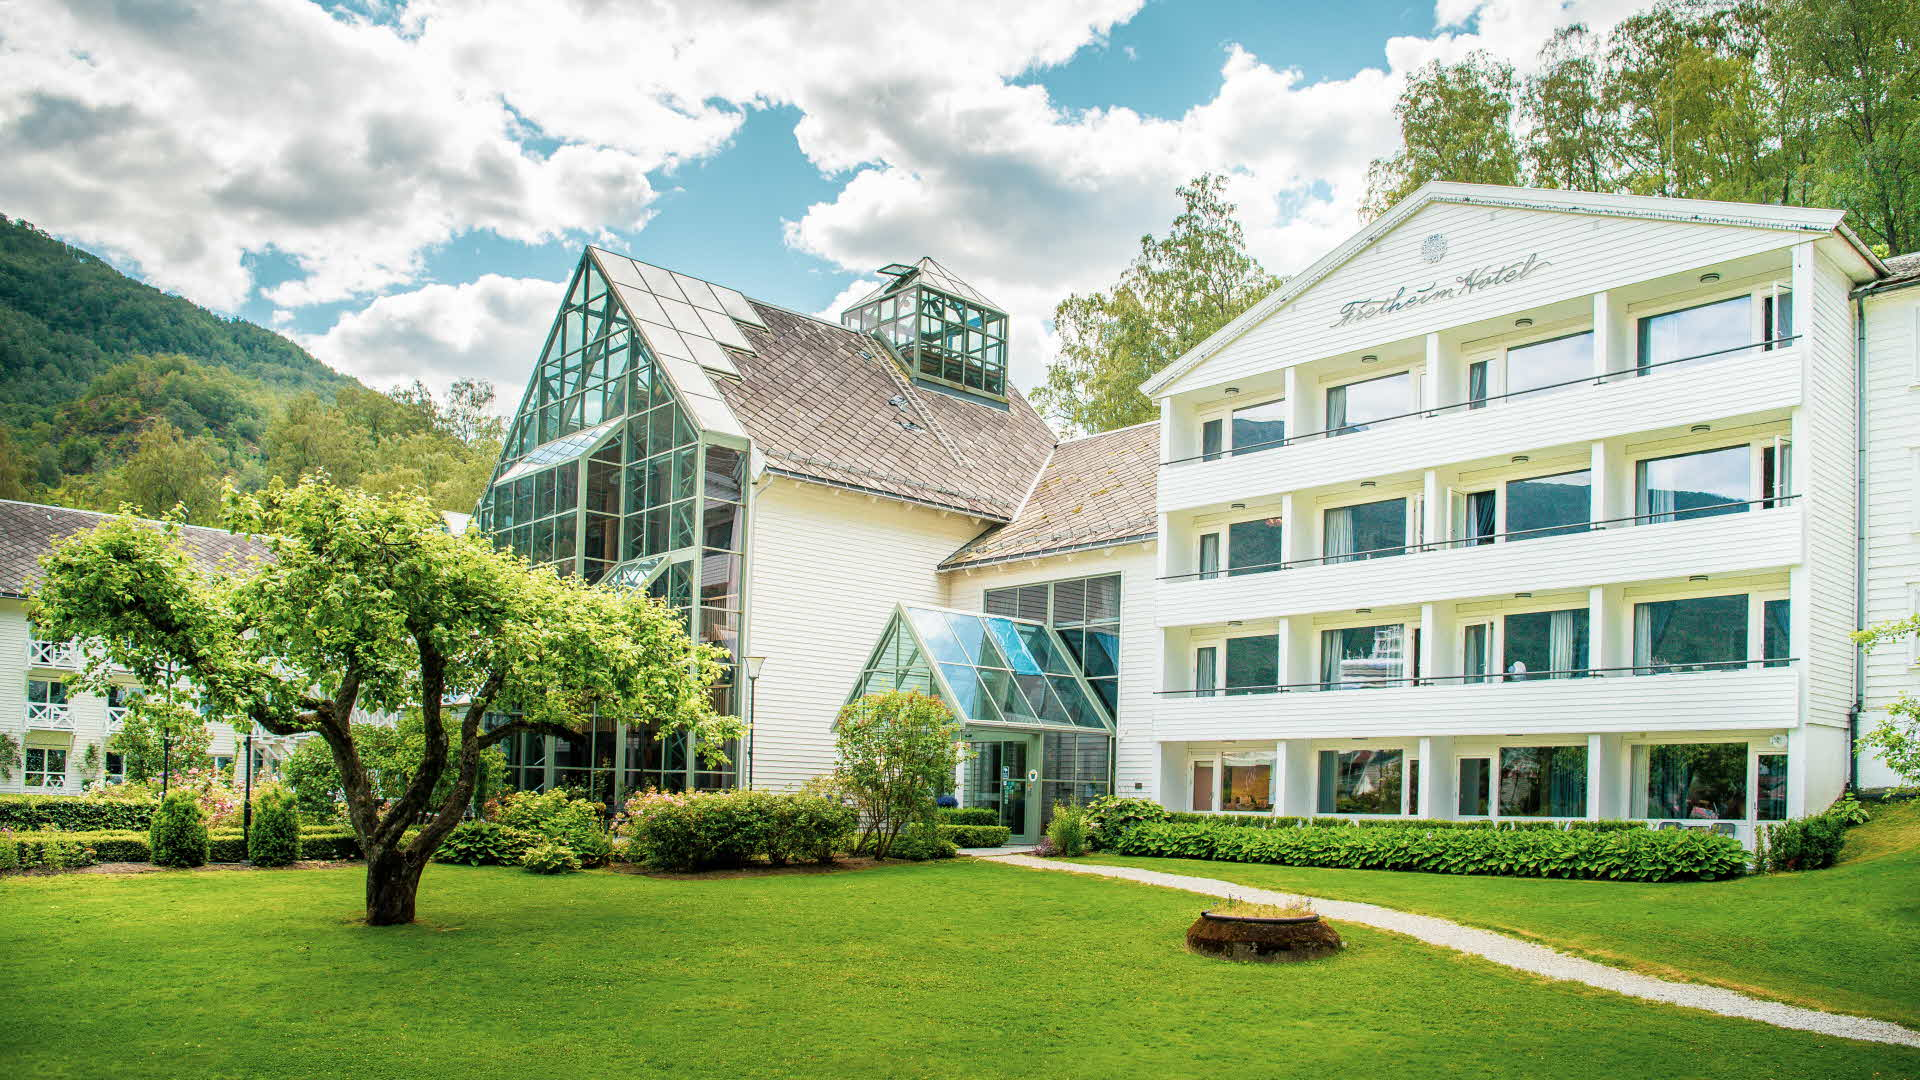 Fretheim Hotel, viewed from the garden on a partly cloudy summer day